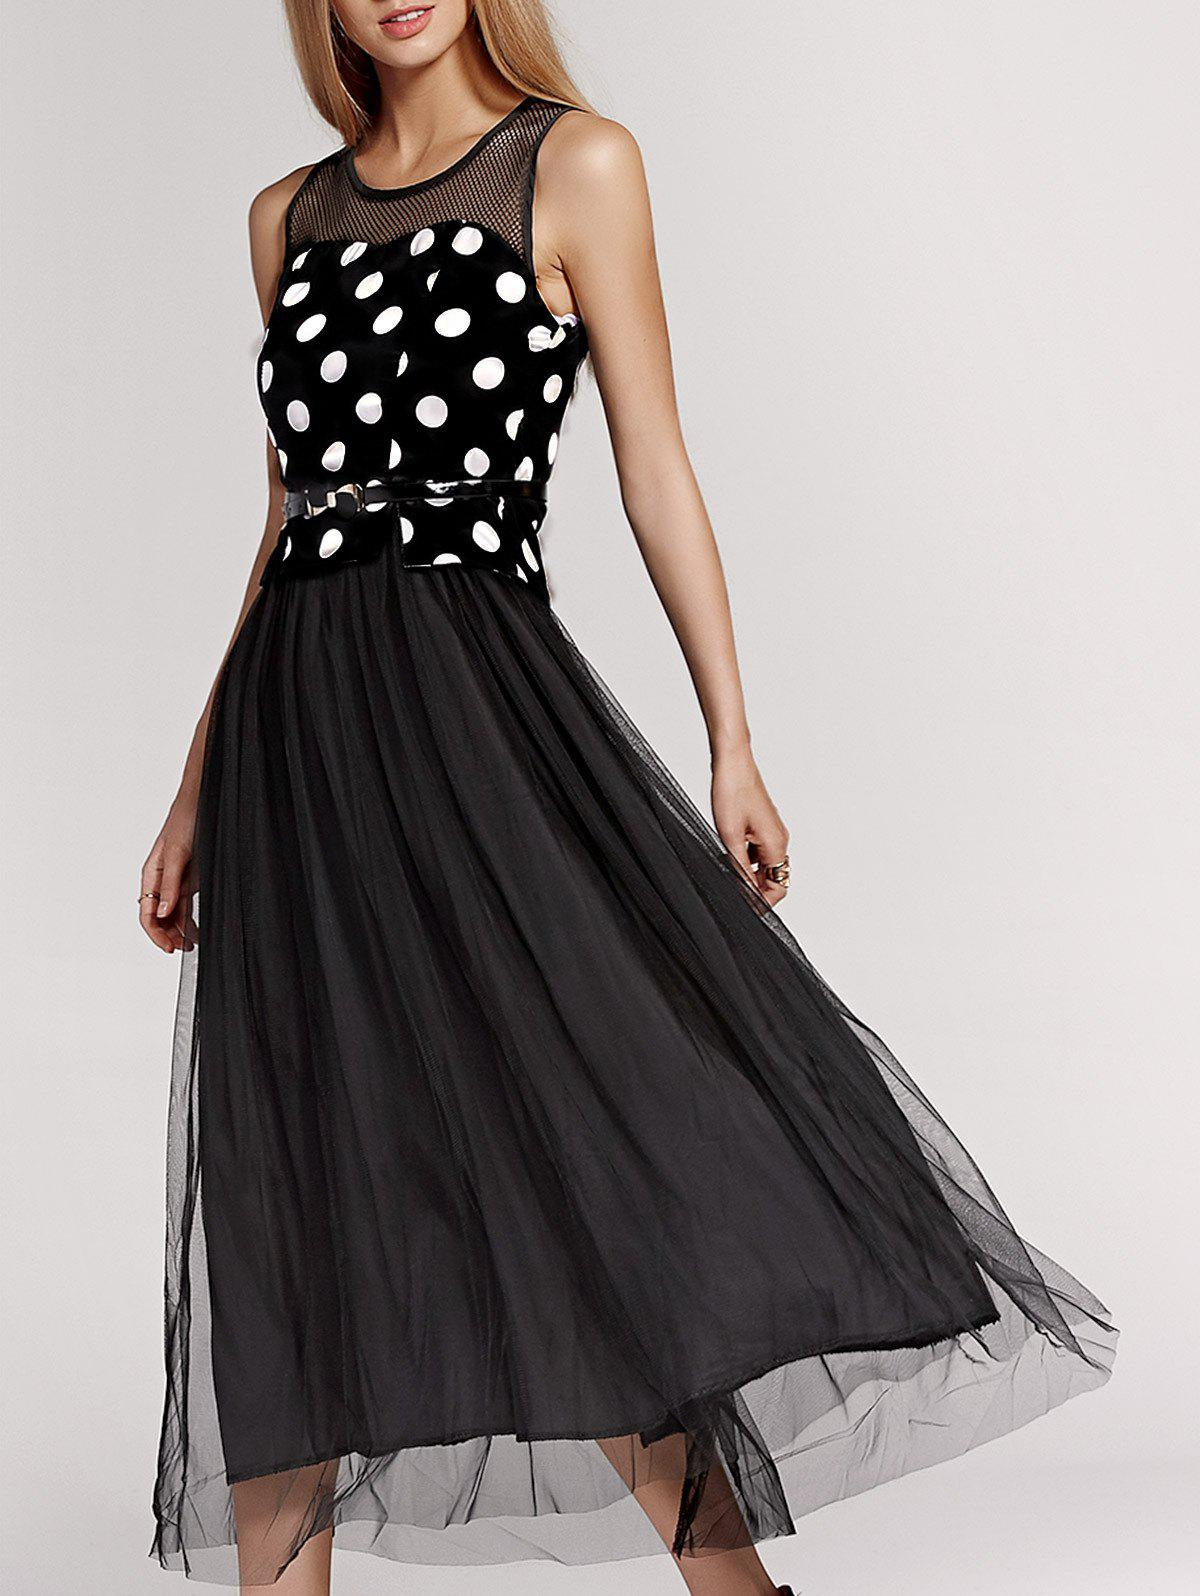 Sweet Gauze Spliced Polka Dot Sleeveless Pleated Dress For Women - BLACK XL